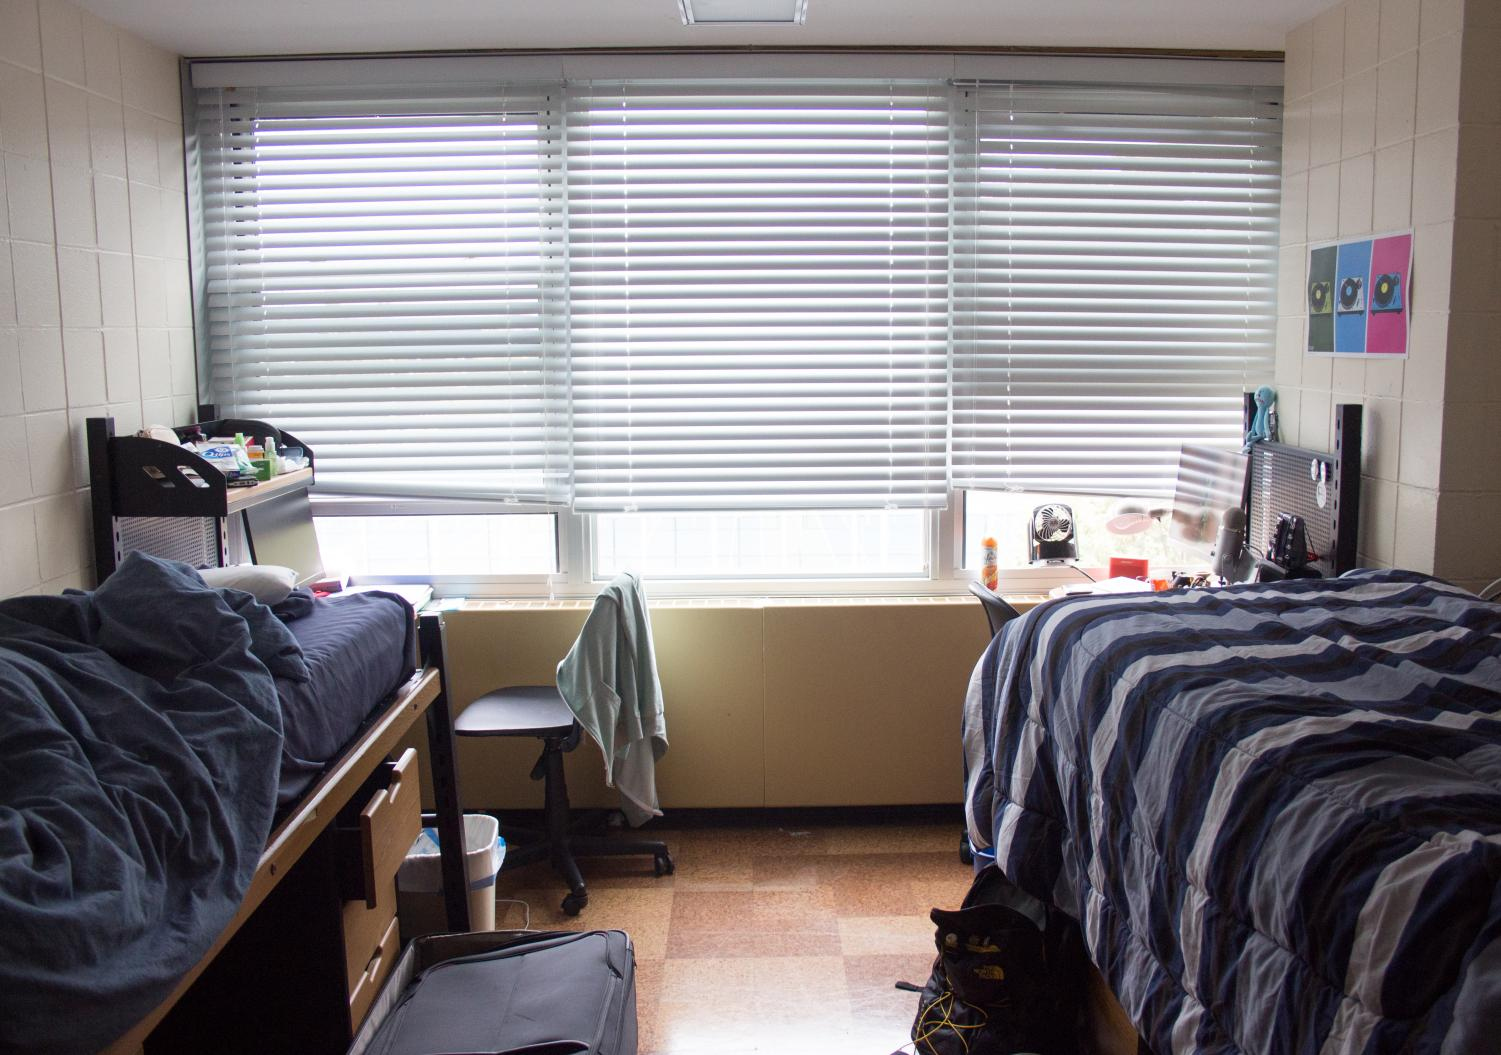 A dorm room located in Carr Hall of Pennsylvania Avenue Residence Halls. Sharing a space with someone else — whether you know them or not — is daunting, but being a considerate person is the first step in having a good experience with a new roommate.